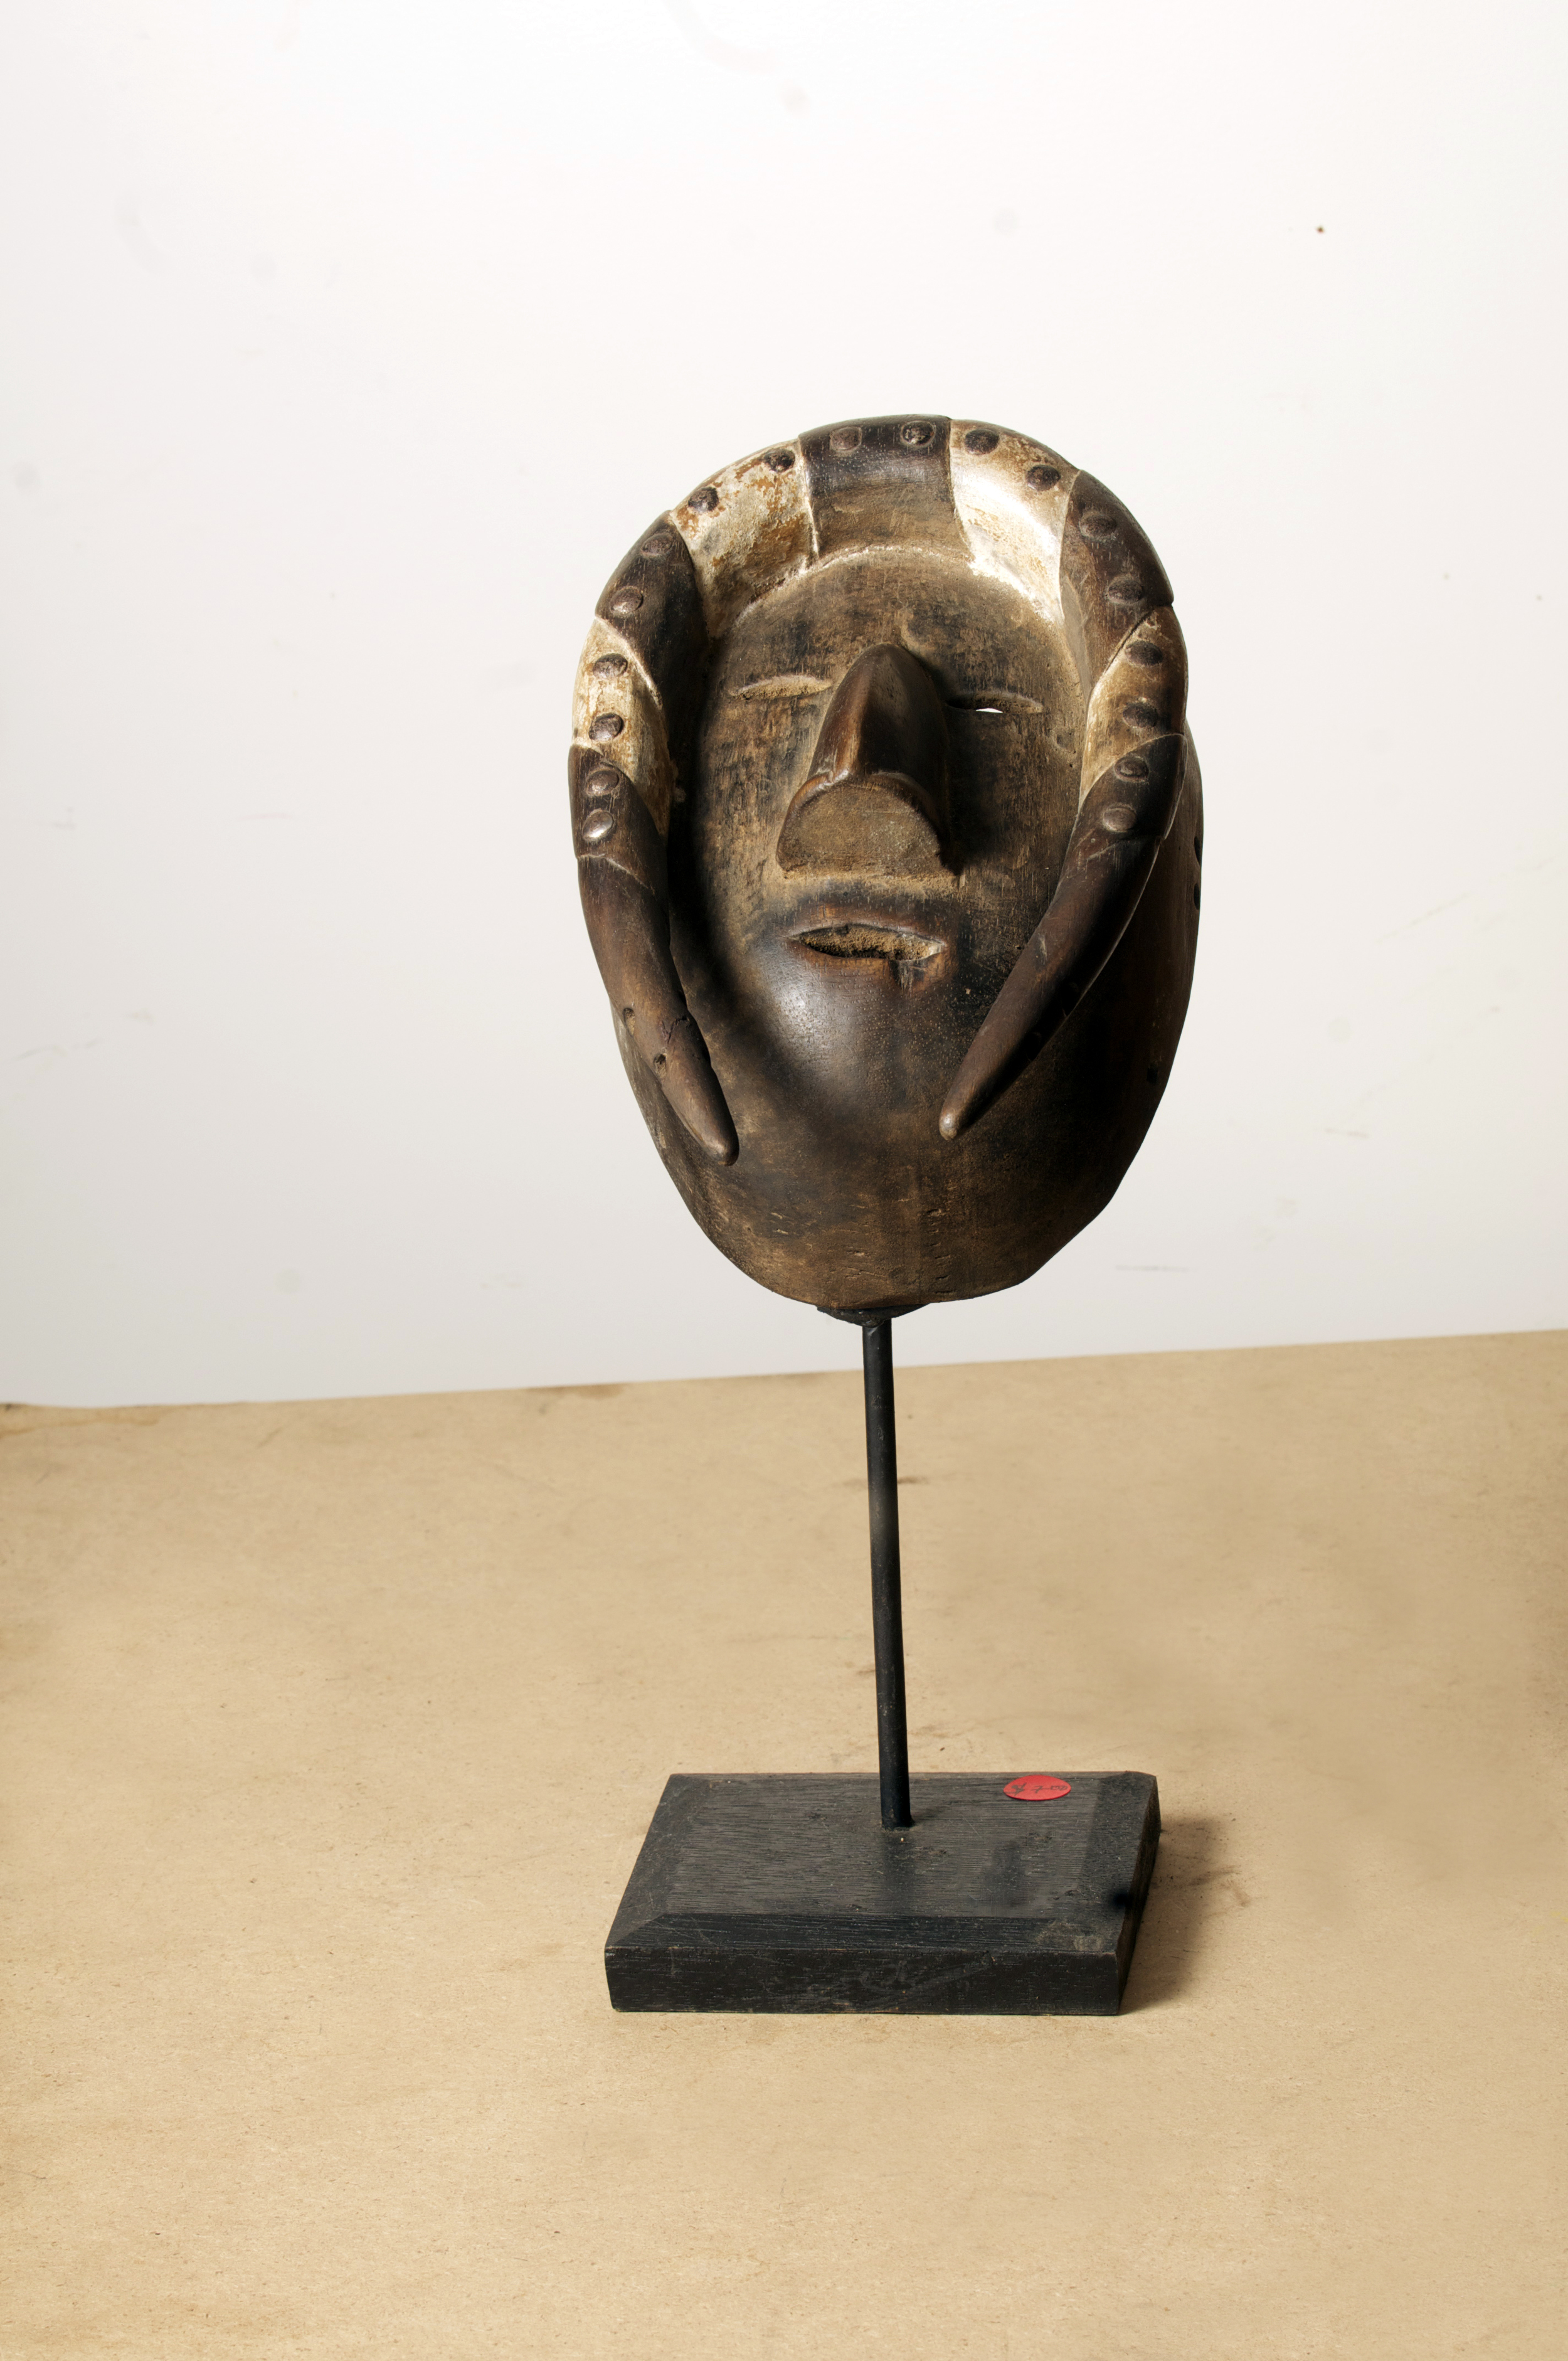 Guro Mask, Cote D'Ivoire, Height 15.4inch. Pp. $335.00.jpg